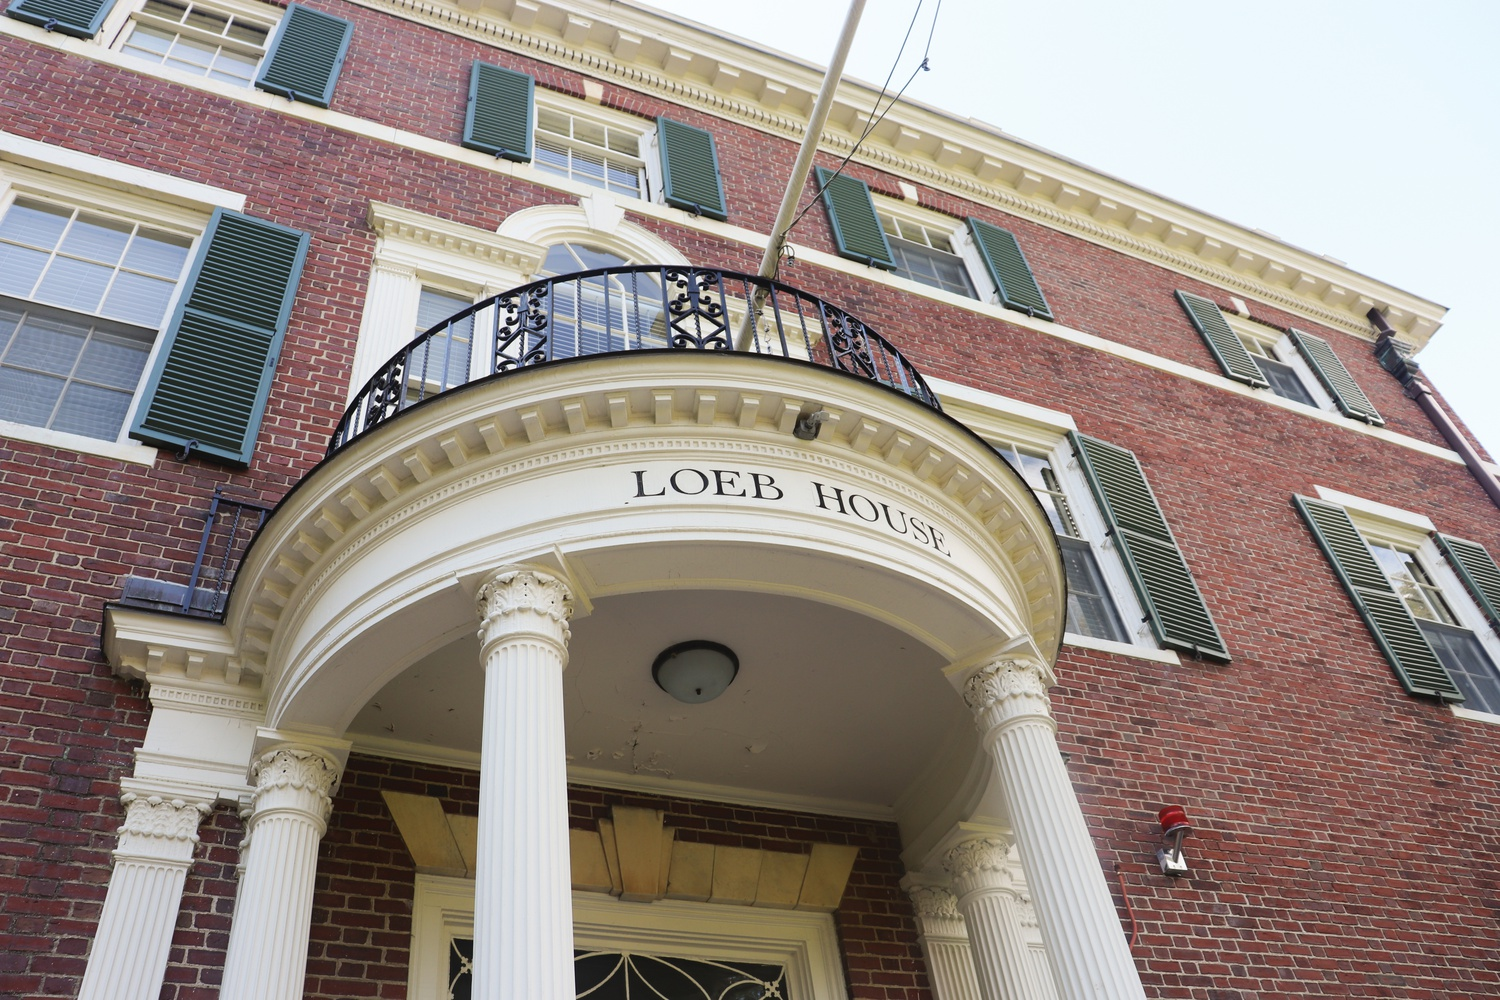 The University's highest governing body — the Harvard Corporation — conducts its business in Loeb House.